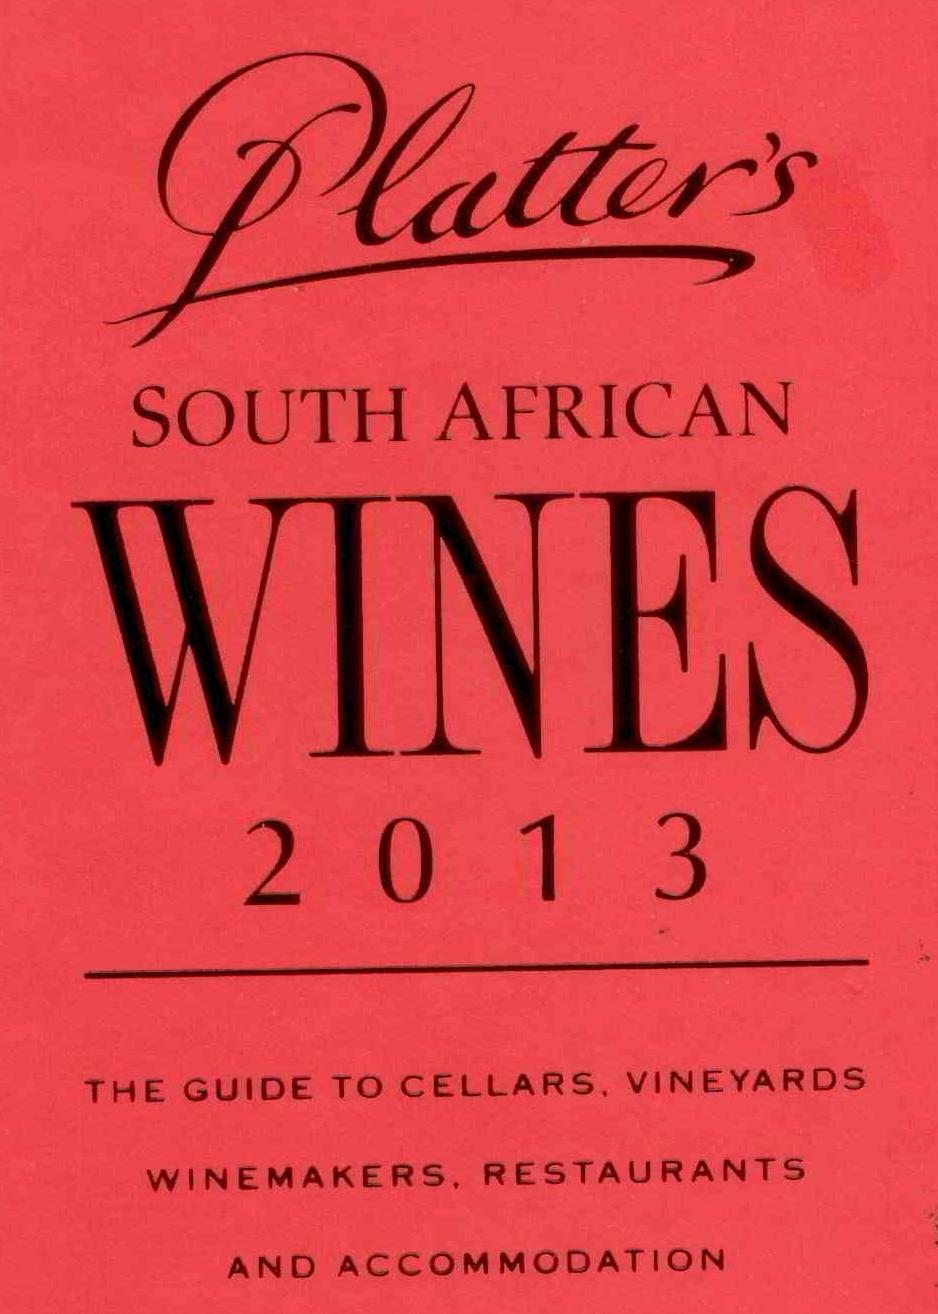 Wine Tours of Hermanus with Percy Tours in the John Platter wine book of South Africa, near Cape Town